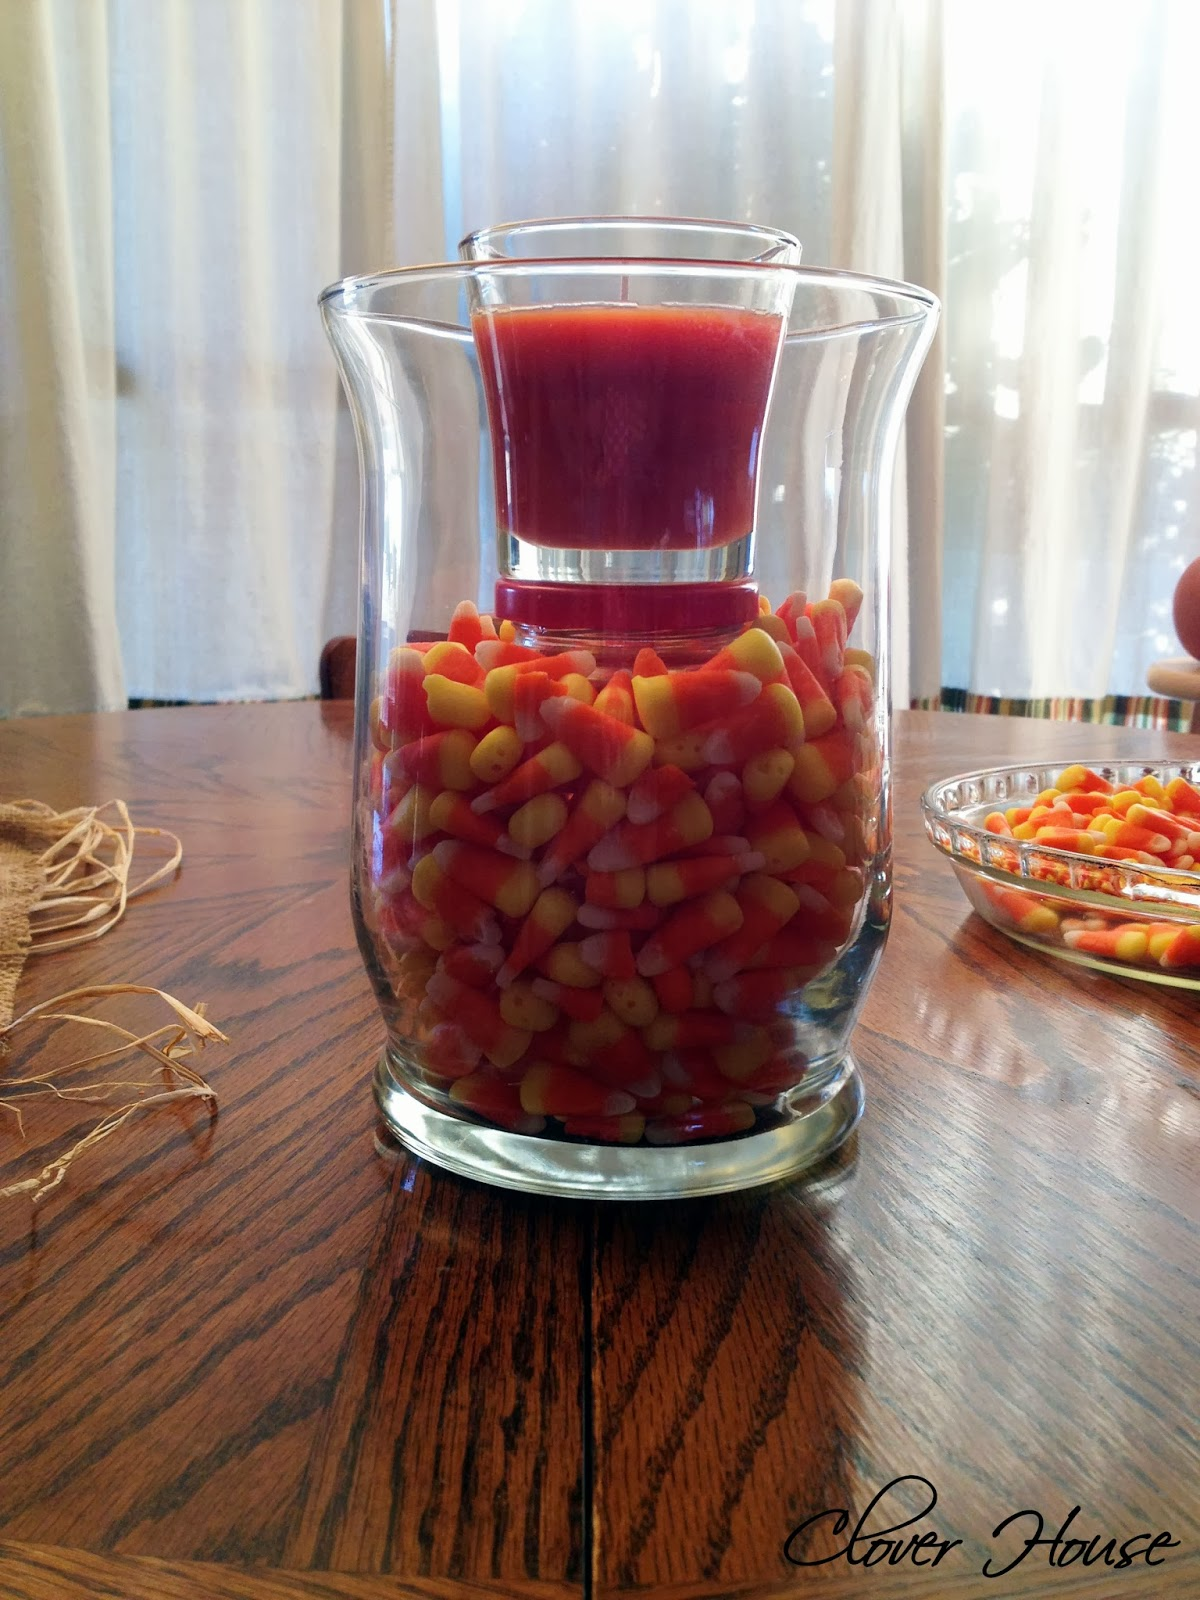 Clover house candy corn centerpiece easy and inexpensive